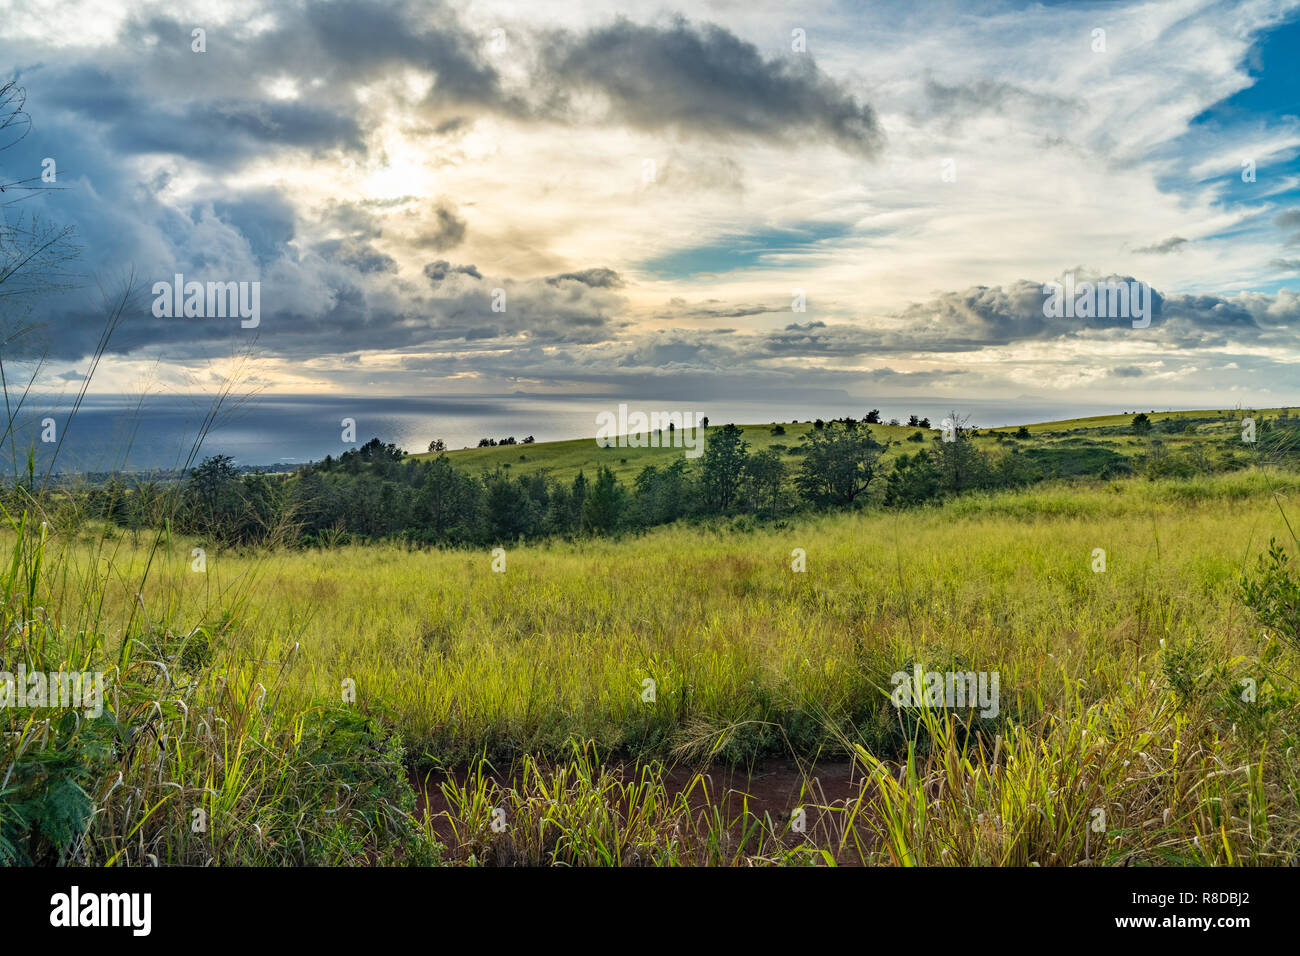 Dramatic clouds over the ocean, looking west from the first pull out on highway 550, Waimea, Kauai, Hawaii - Stock Image